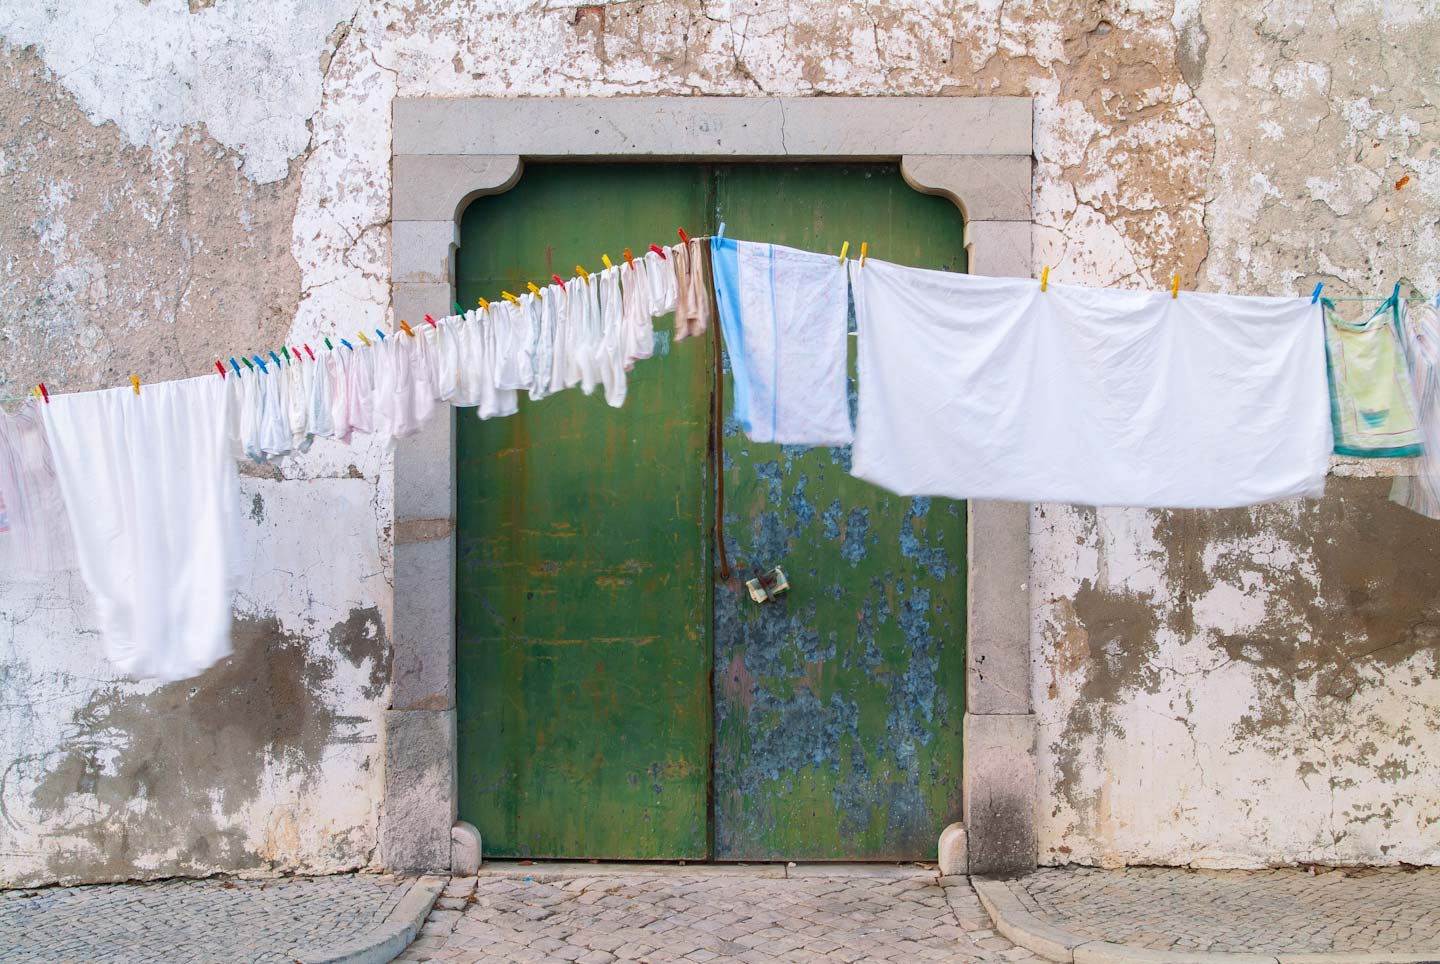 Portugal, Green door laundry-96.jpg